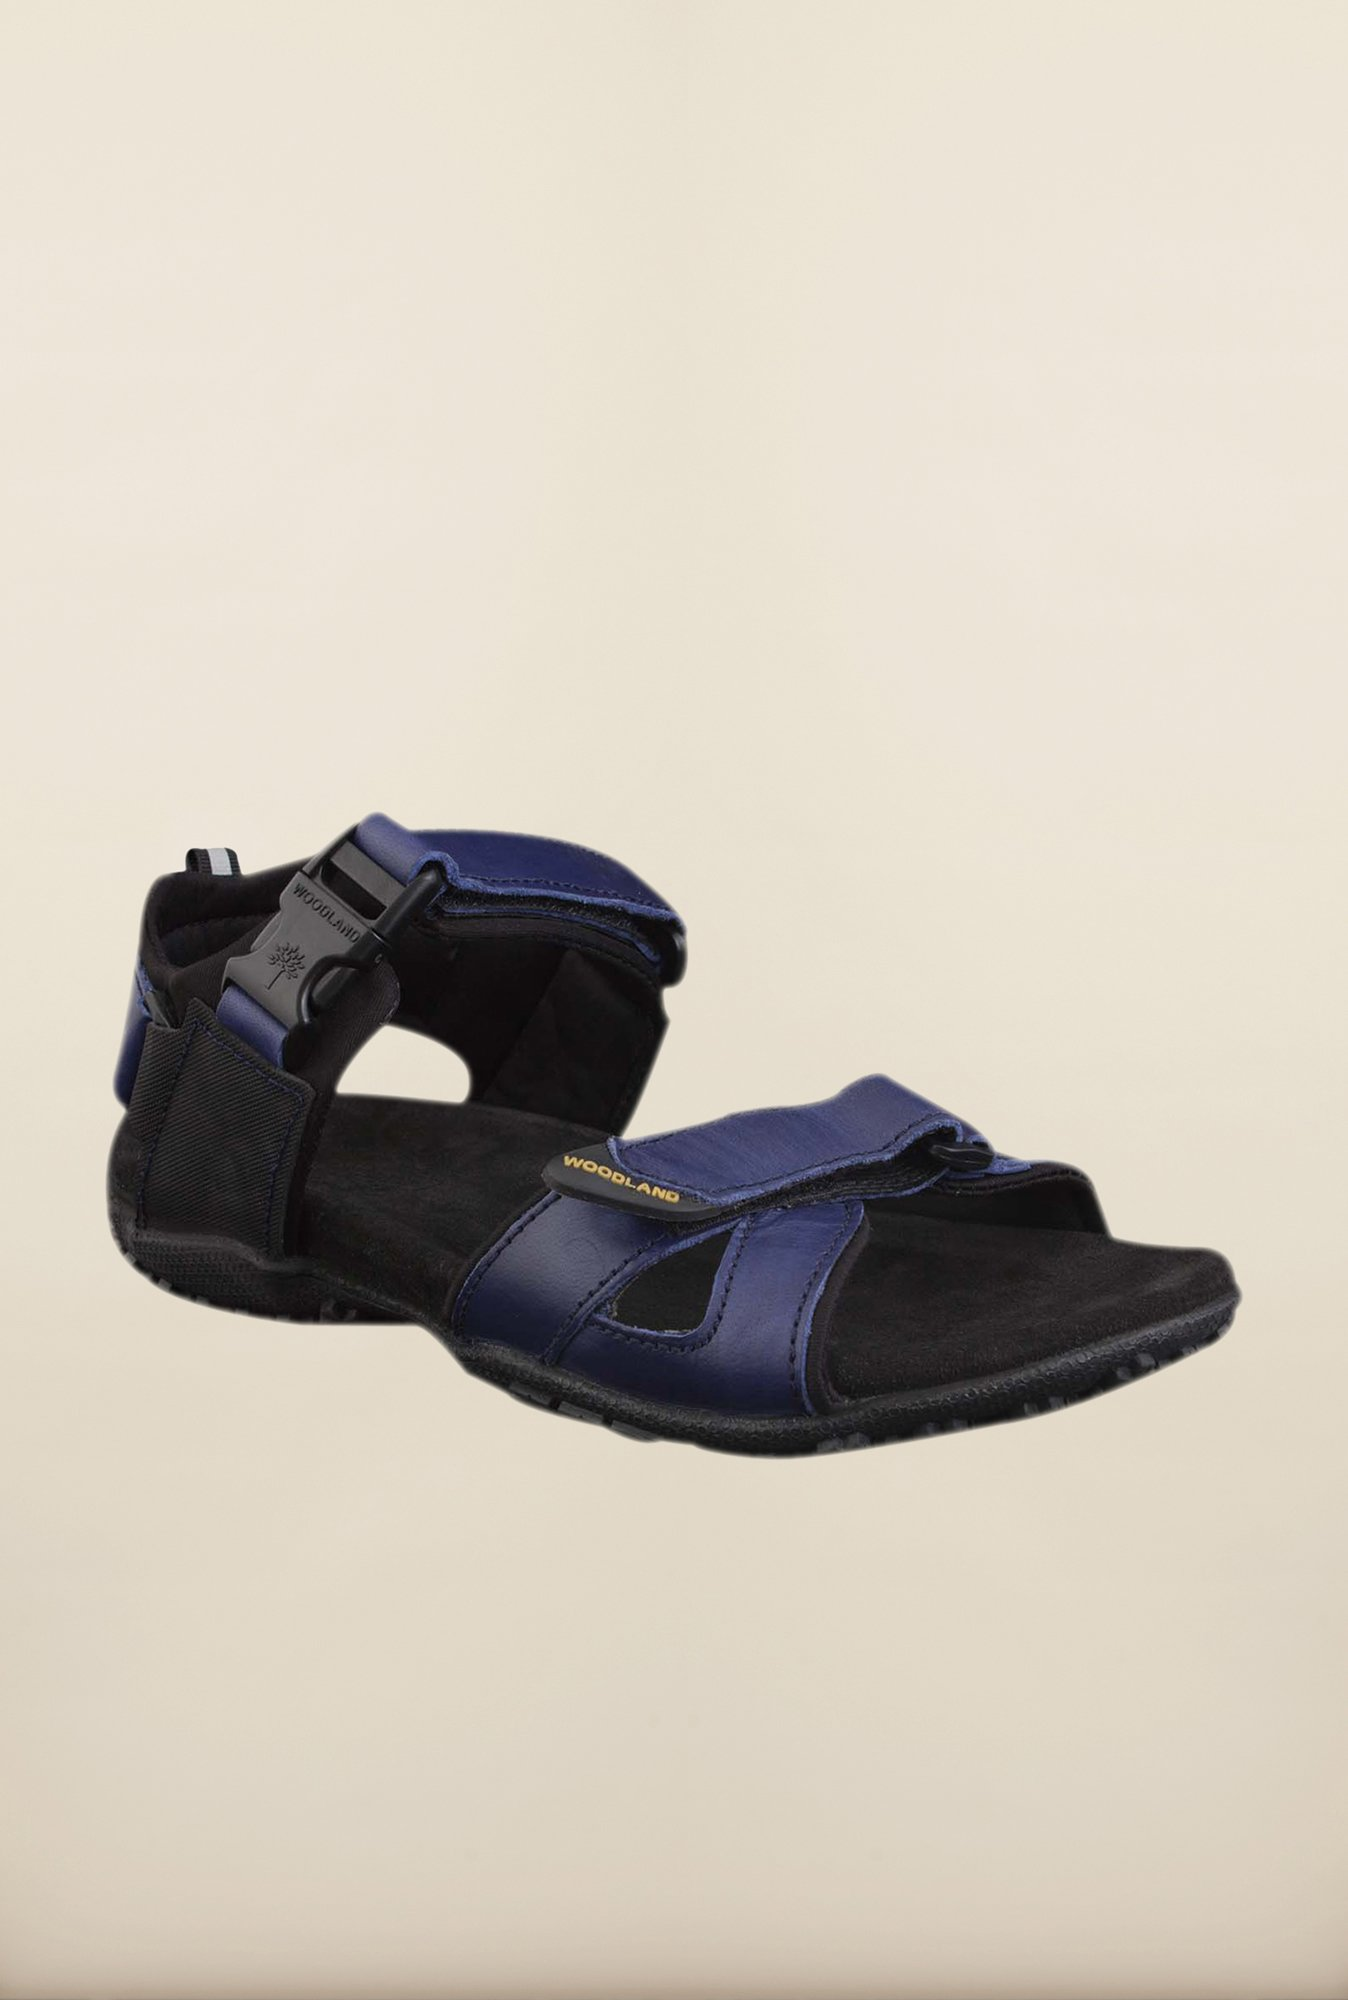 Woodland Dark Blue Floater Sandals